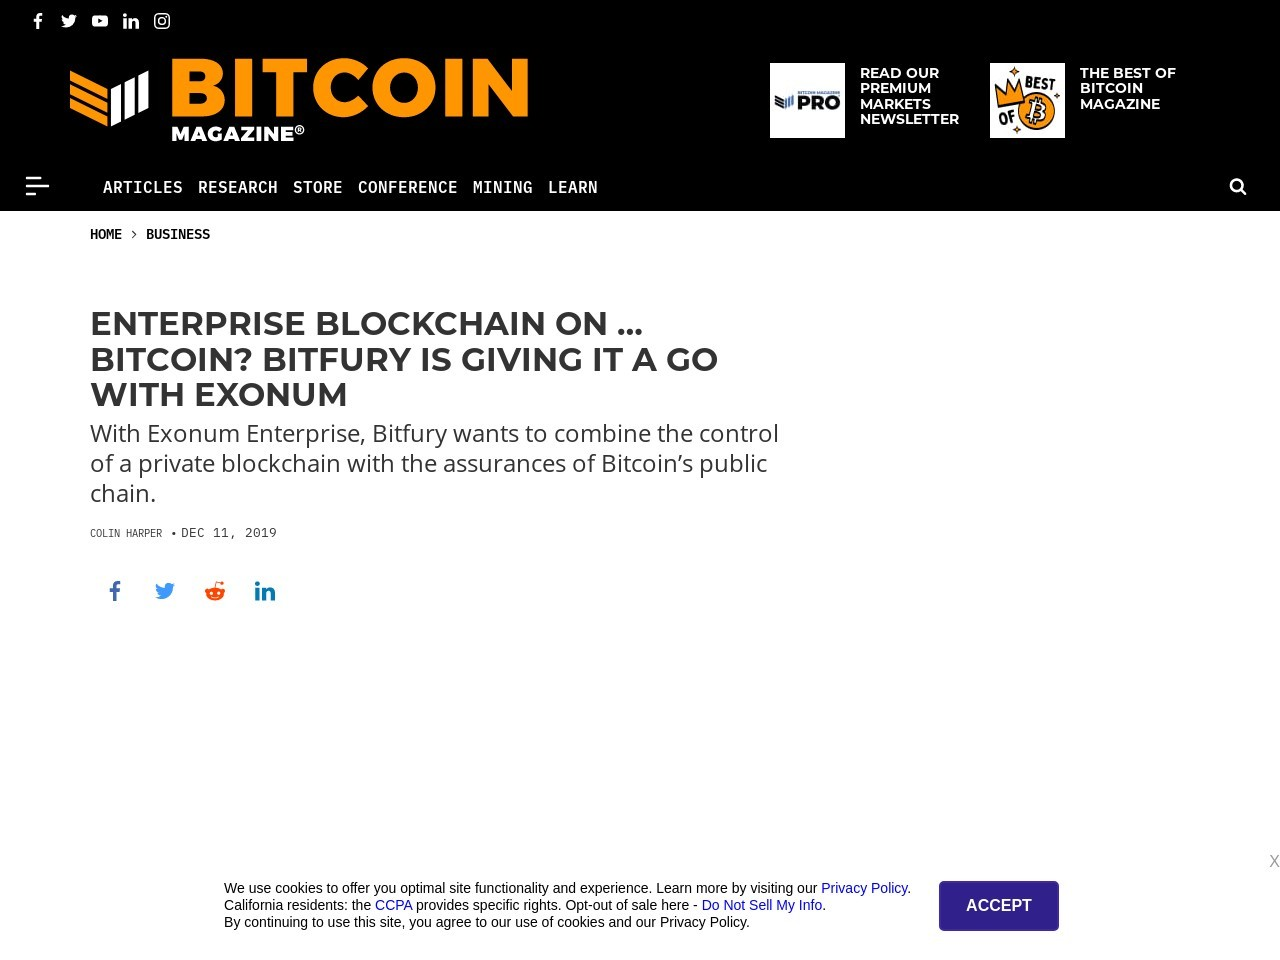 Enterprise Blockchain on … Bitcoin? Bitfury Is Giving It a Go With Exonum